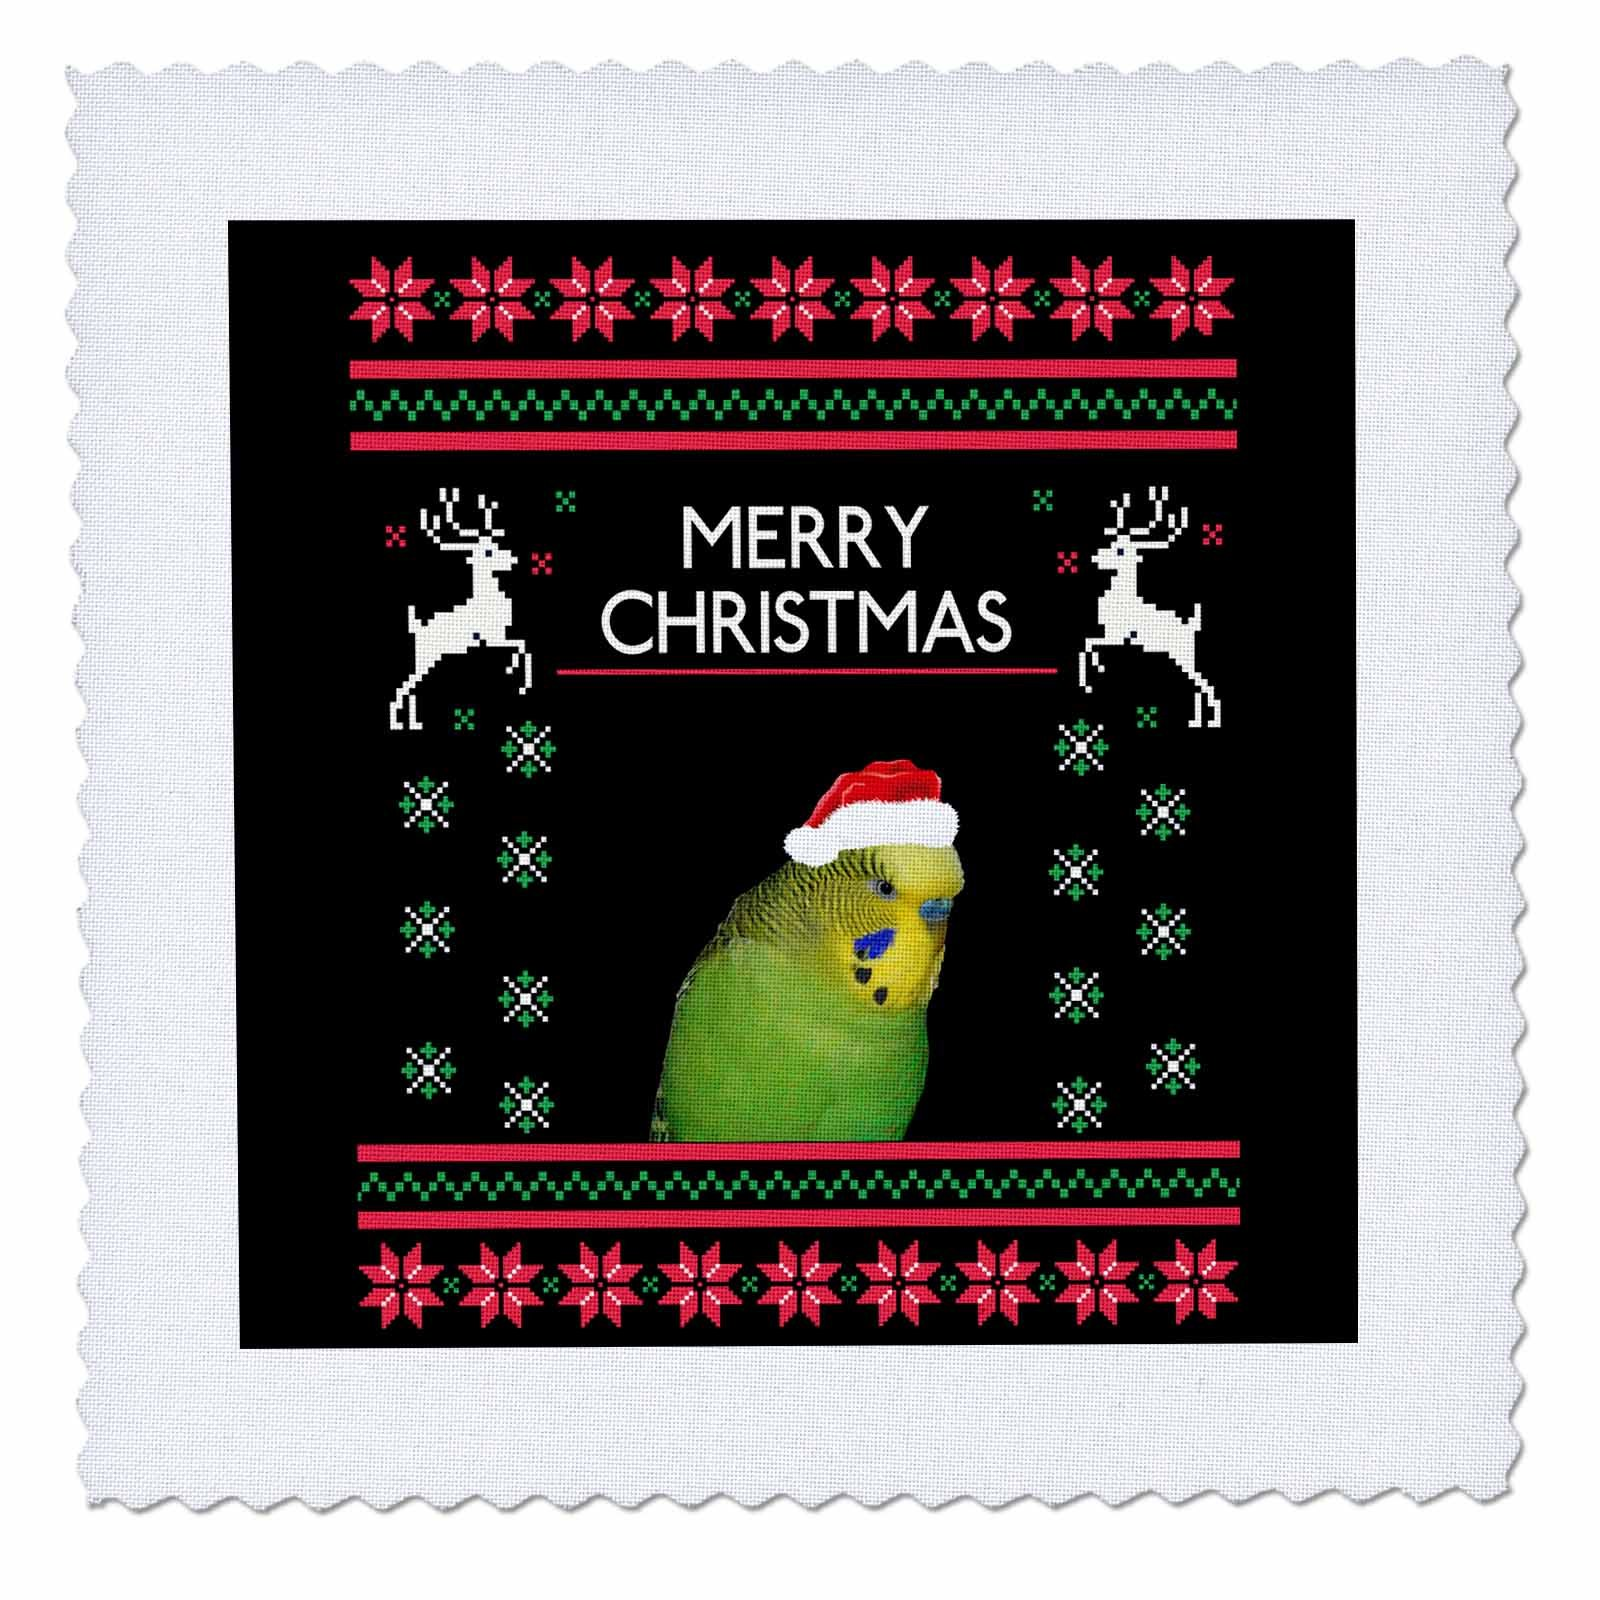 3dRose Sven Herkenrath Animal - Funny Budgie Budgerigar Parrot Xmas Christmas - 16x16 inch quilt square (qs_266262_6)